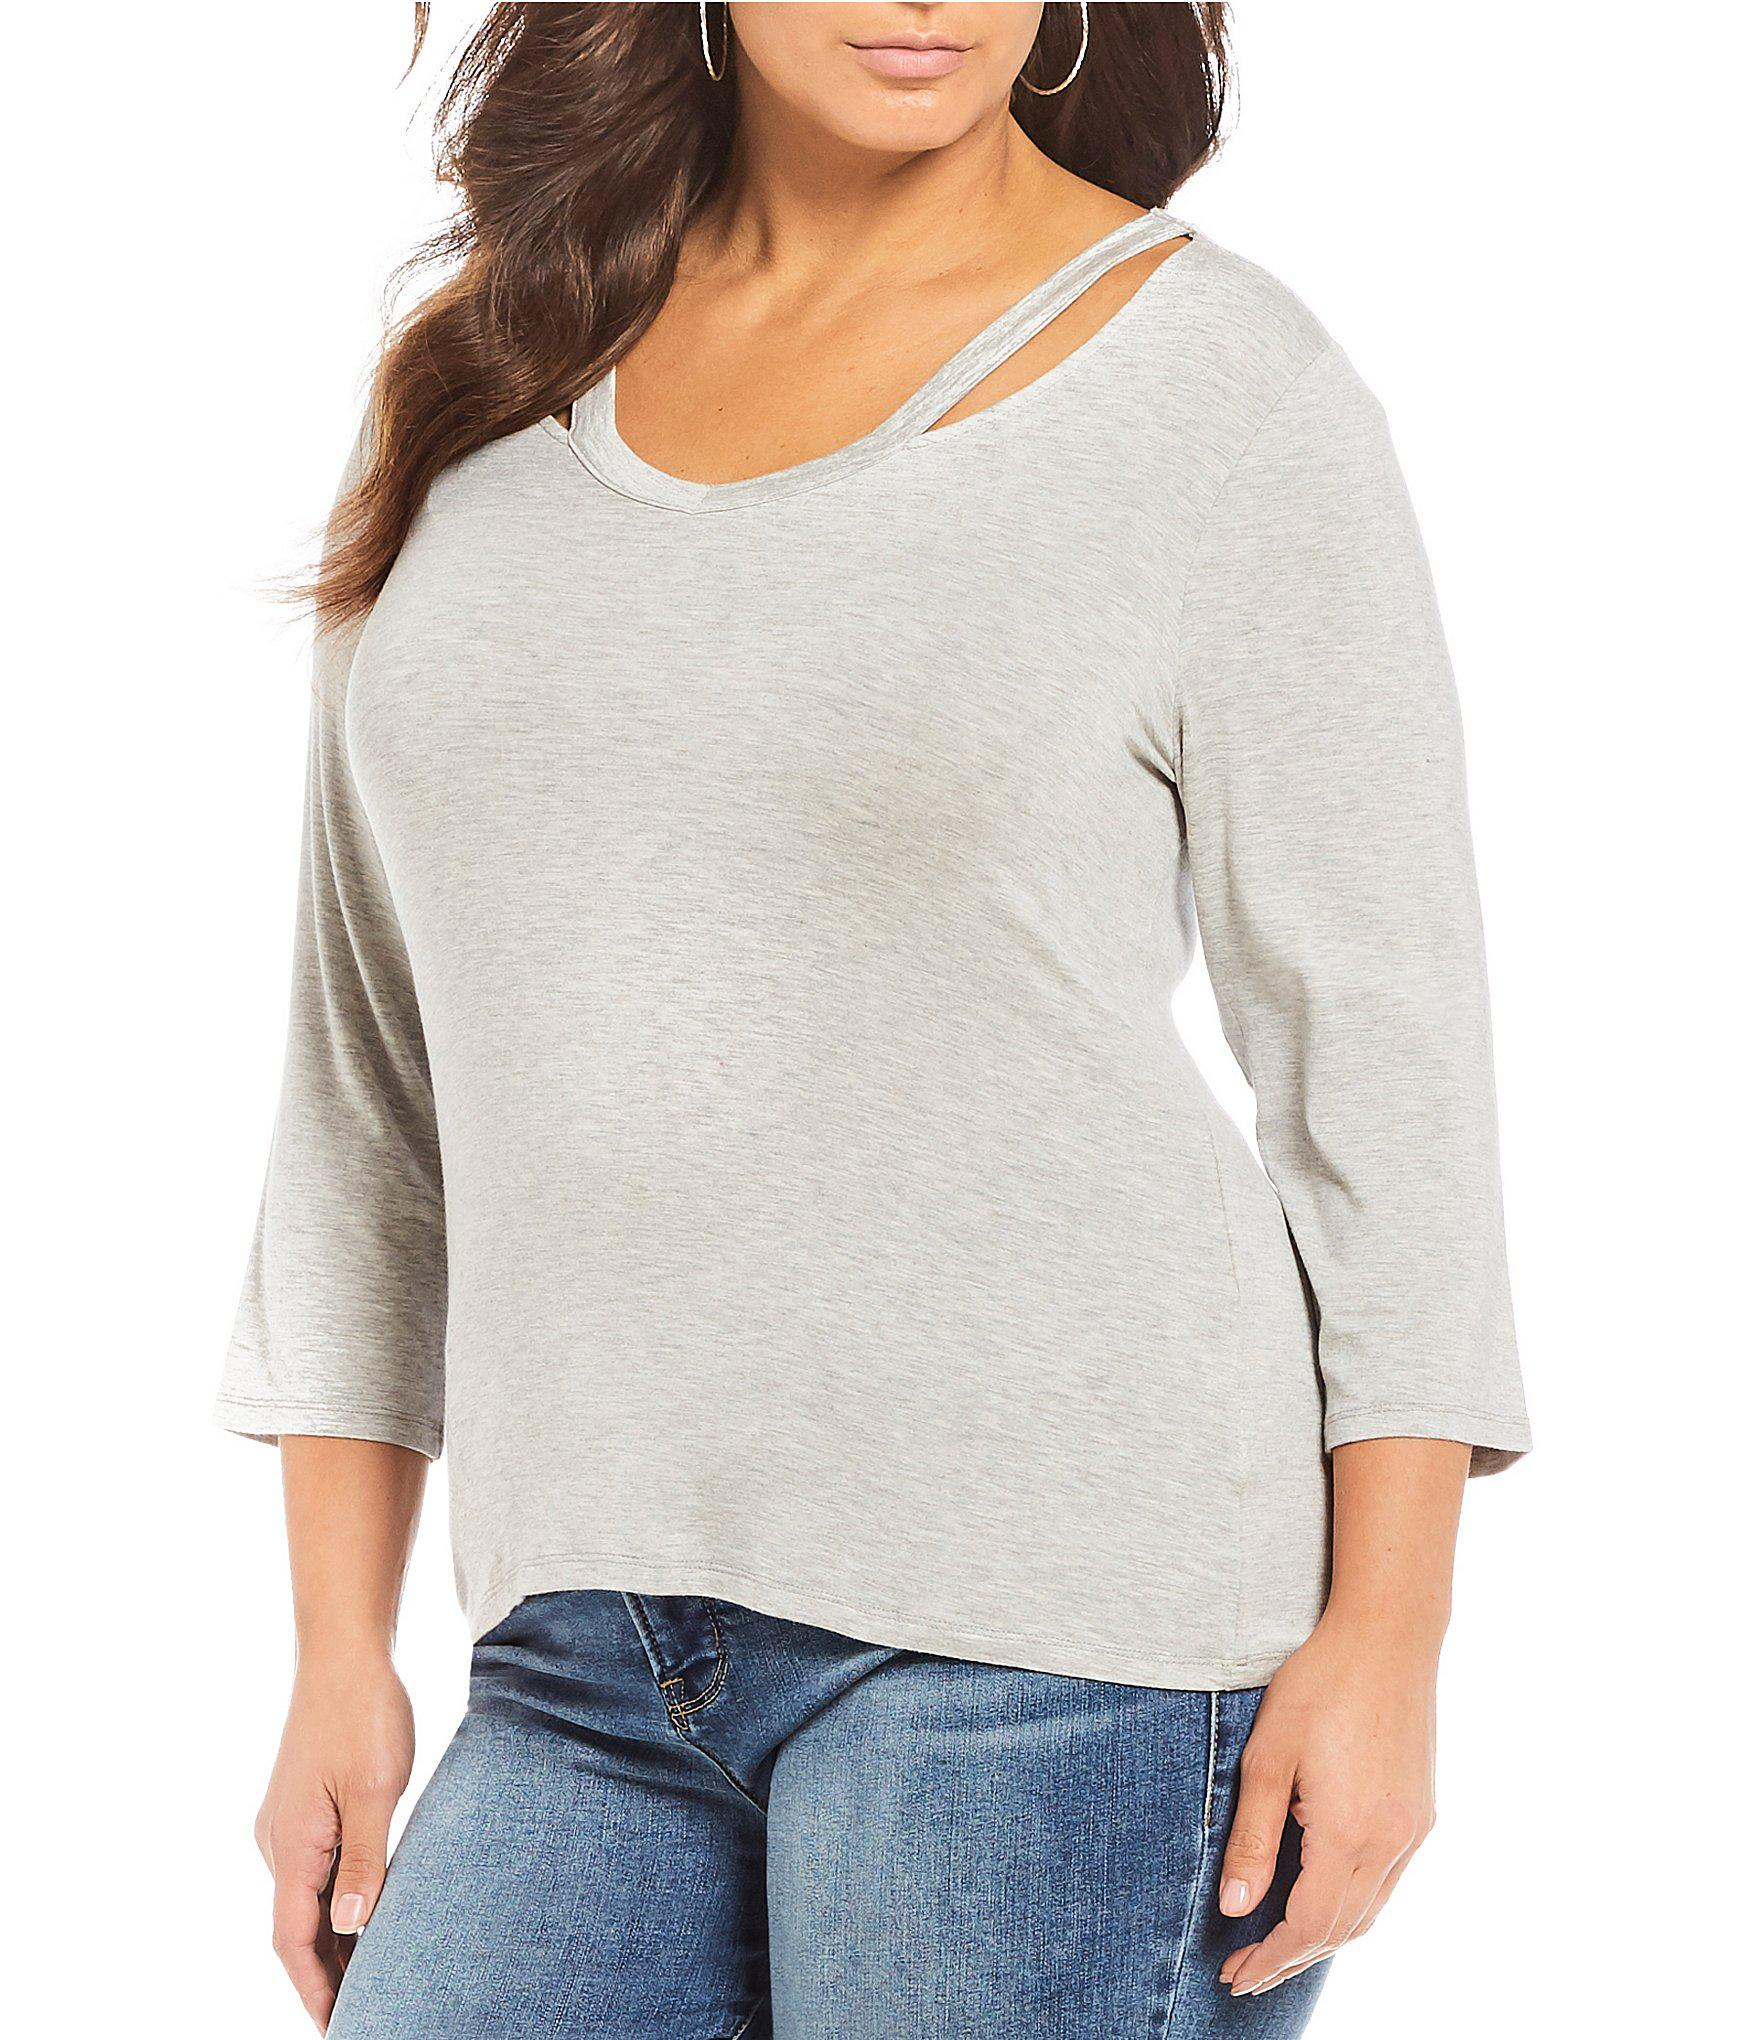 ccfc8c986304cc Lyst - Rebel Wilson X Angels Plus Size Cut Out Detail Top in Gray